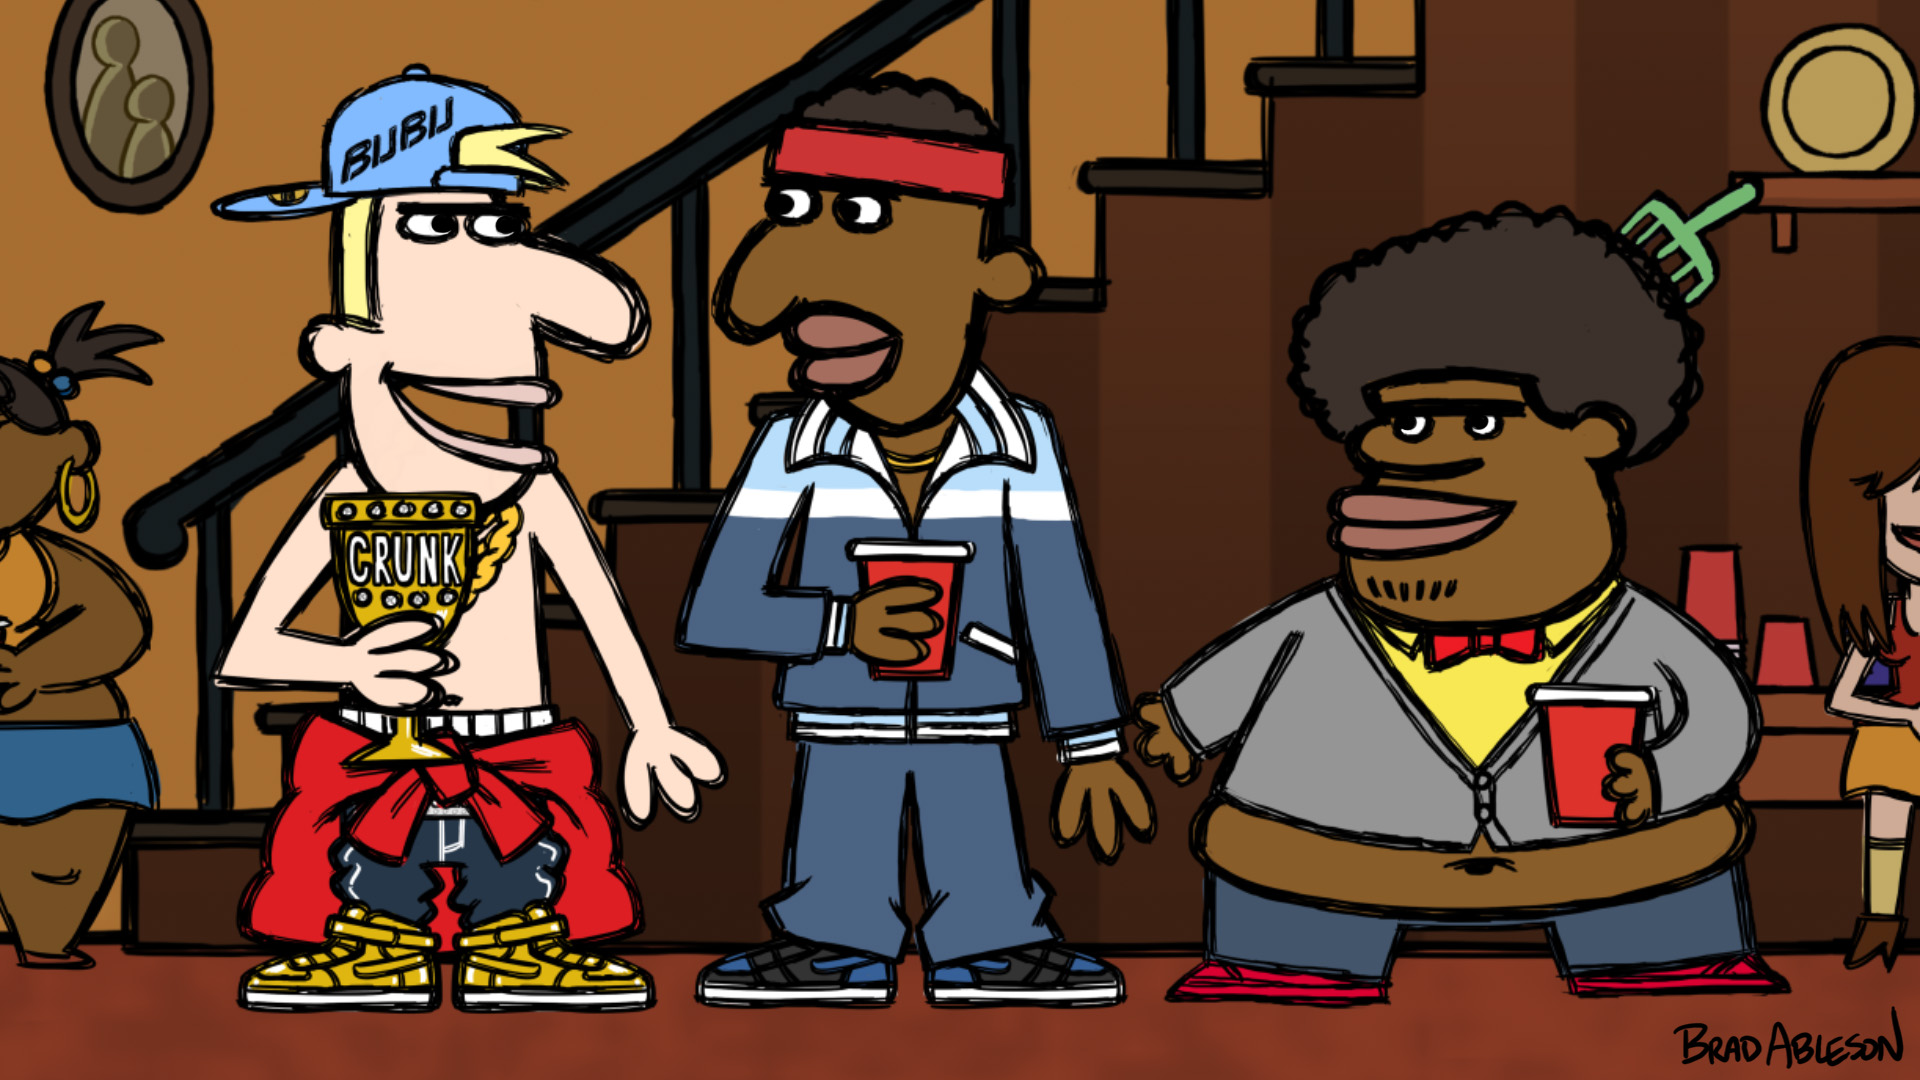 """Comedy Central greenlights 10 episodes of animated """"Legends of Chamberlain Heights"""""""